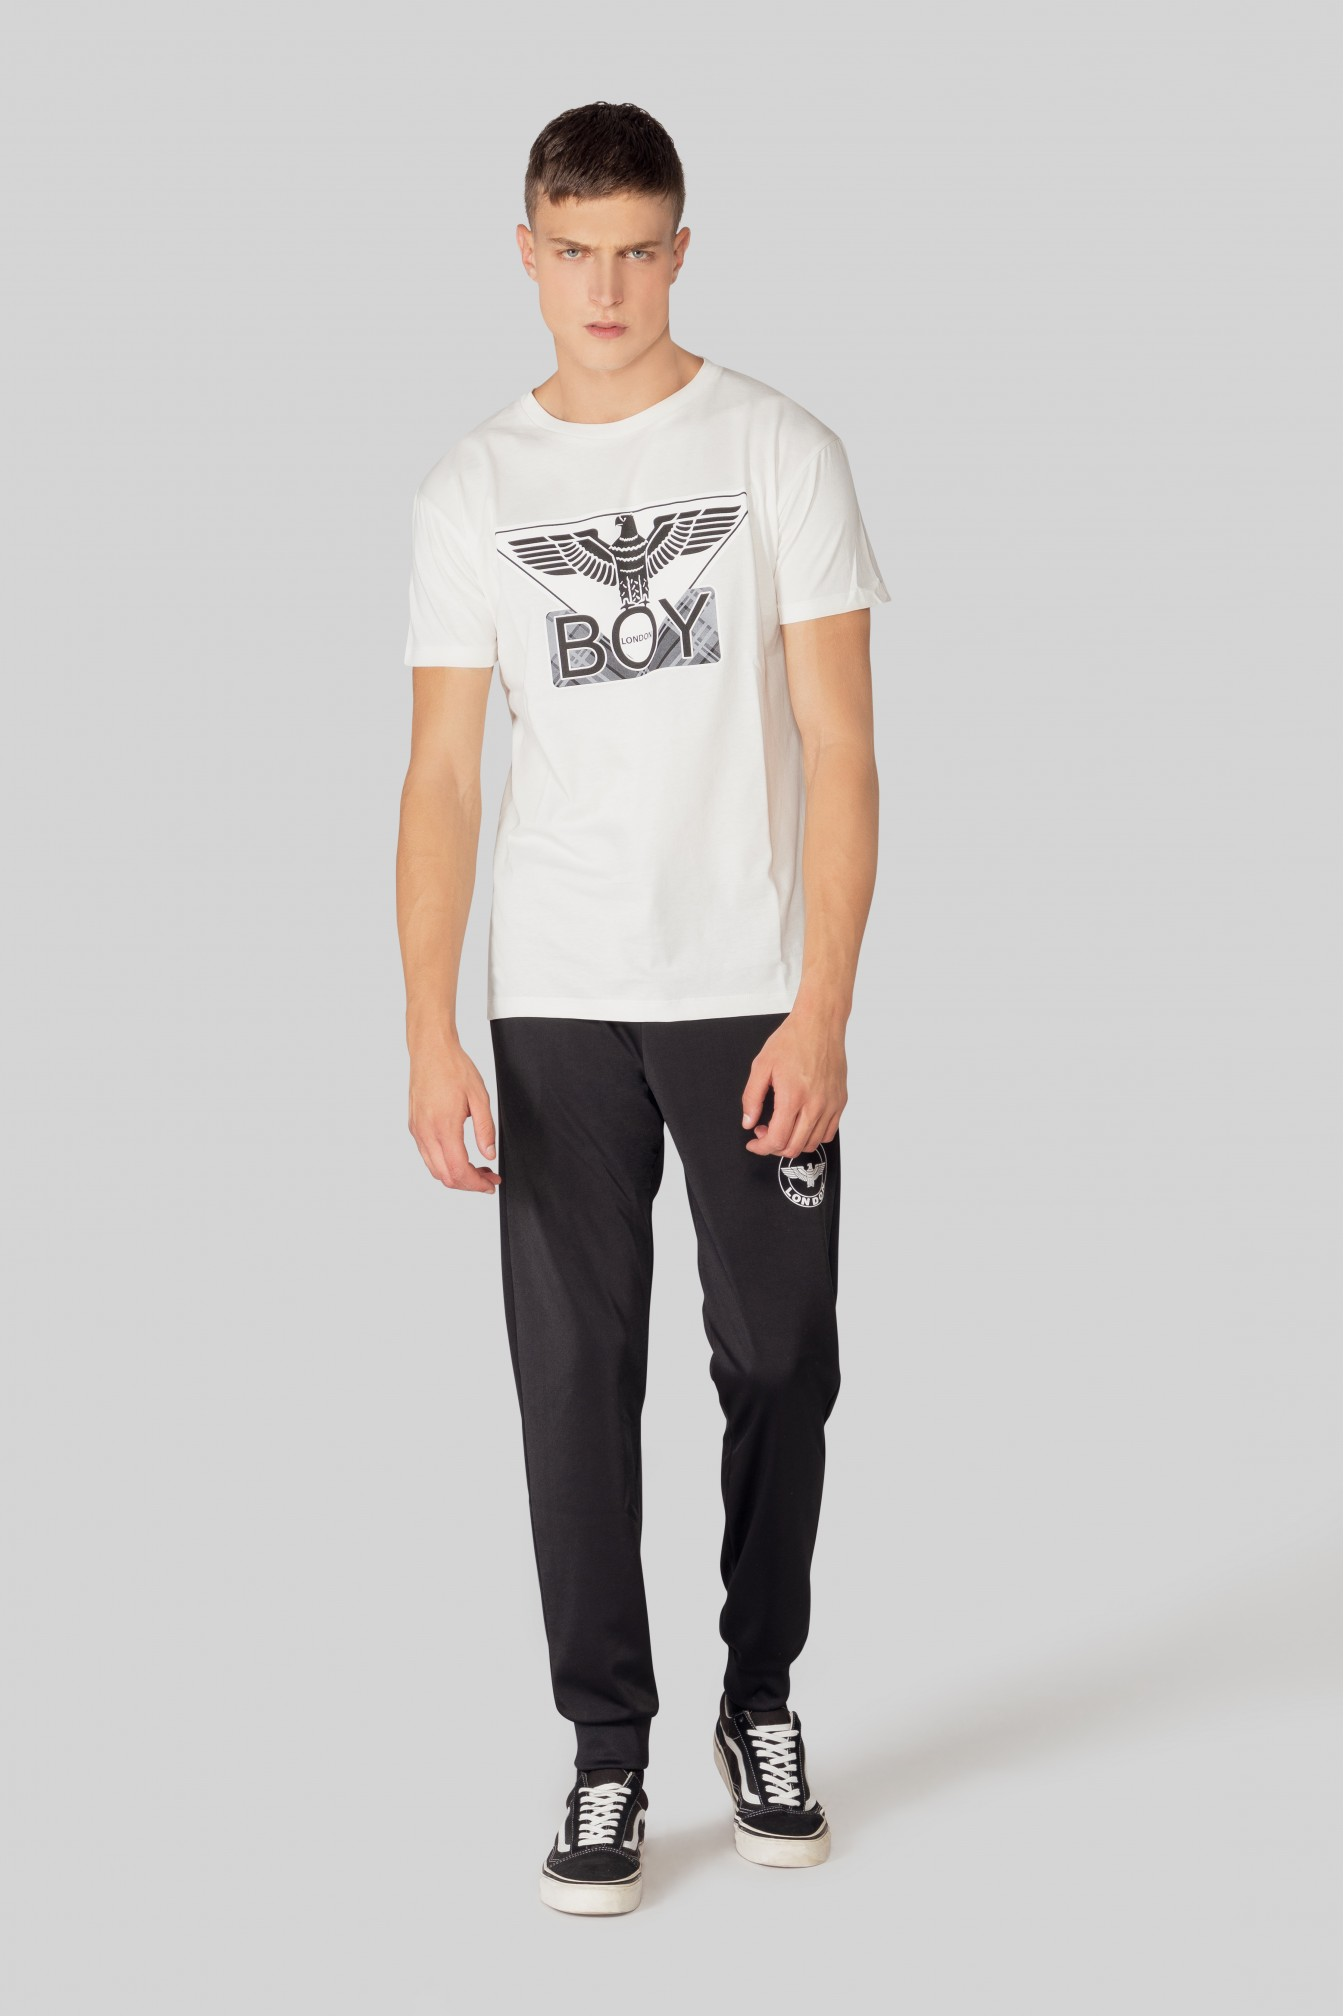 T-SHIRT - BLU6750 - BOY LONDON